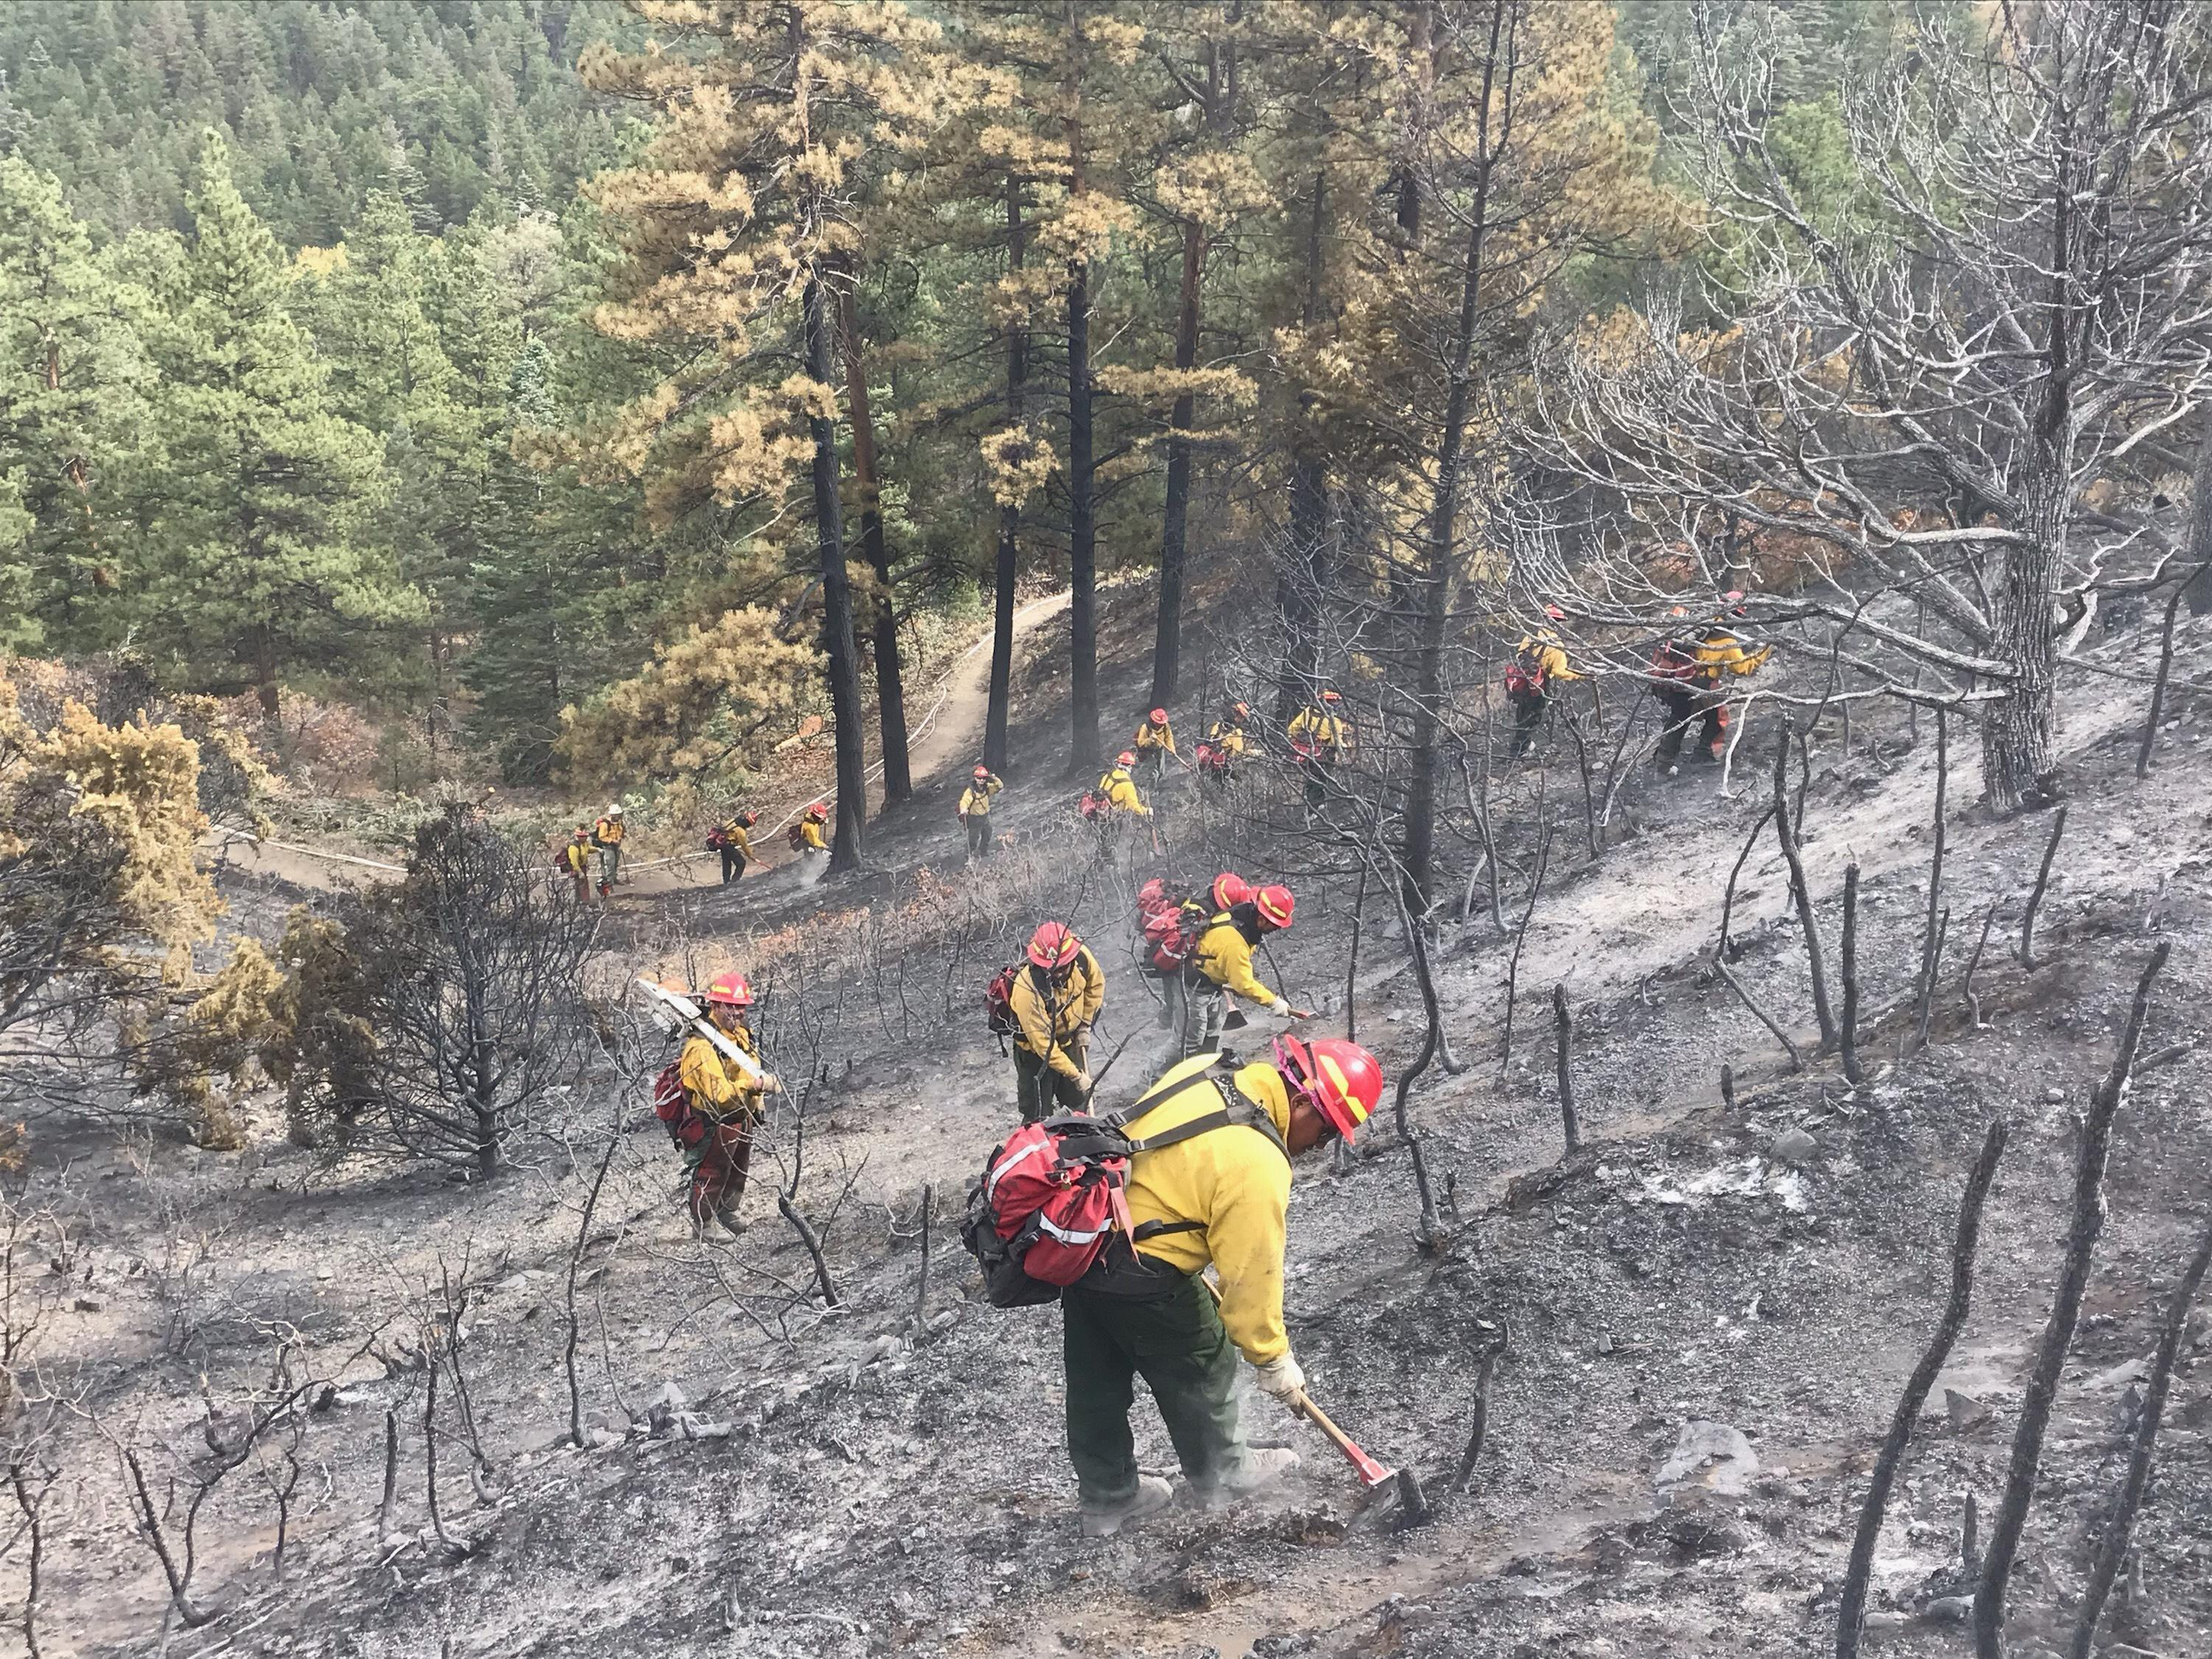 Firefighters on the Decker Fire conducting mop-up operations in Bear Creek, Oct. 17, 2019